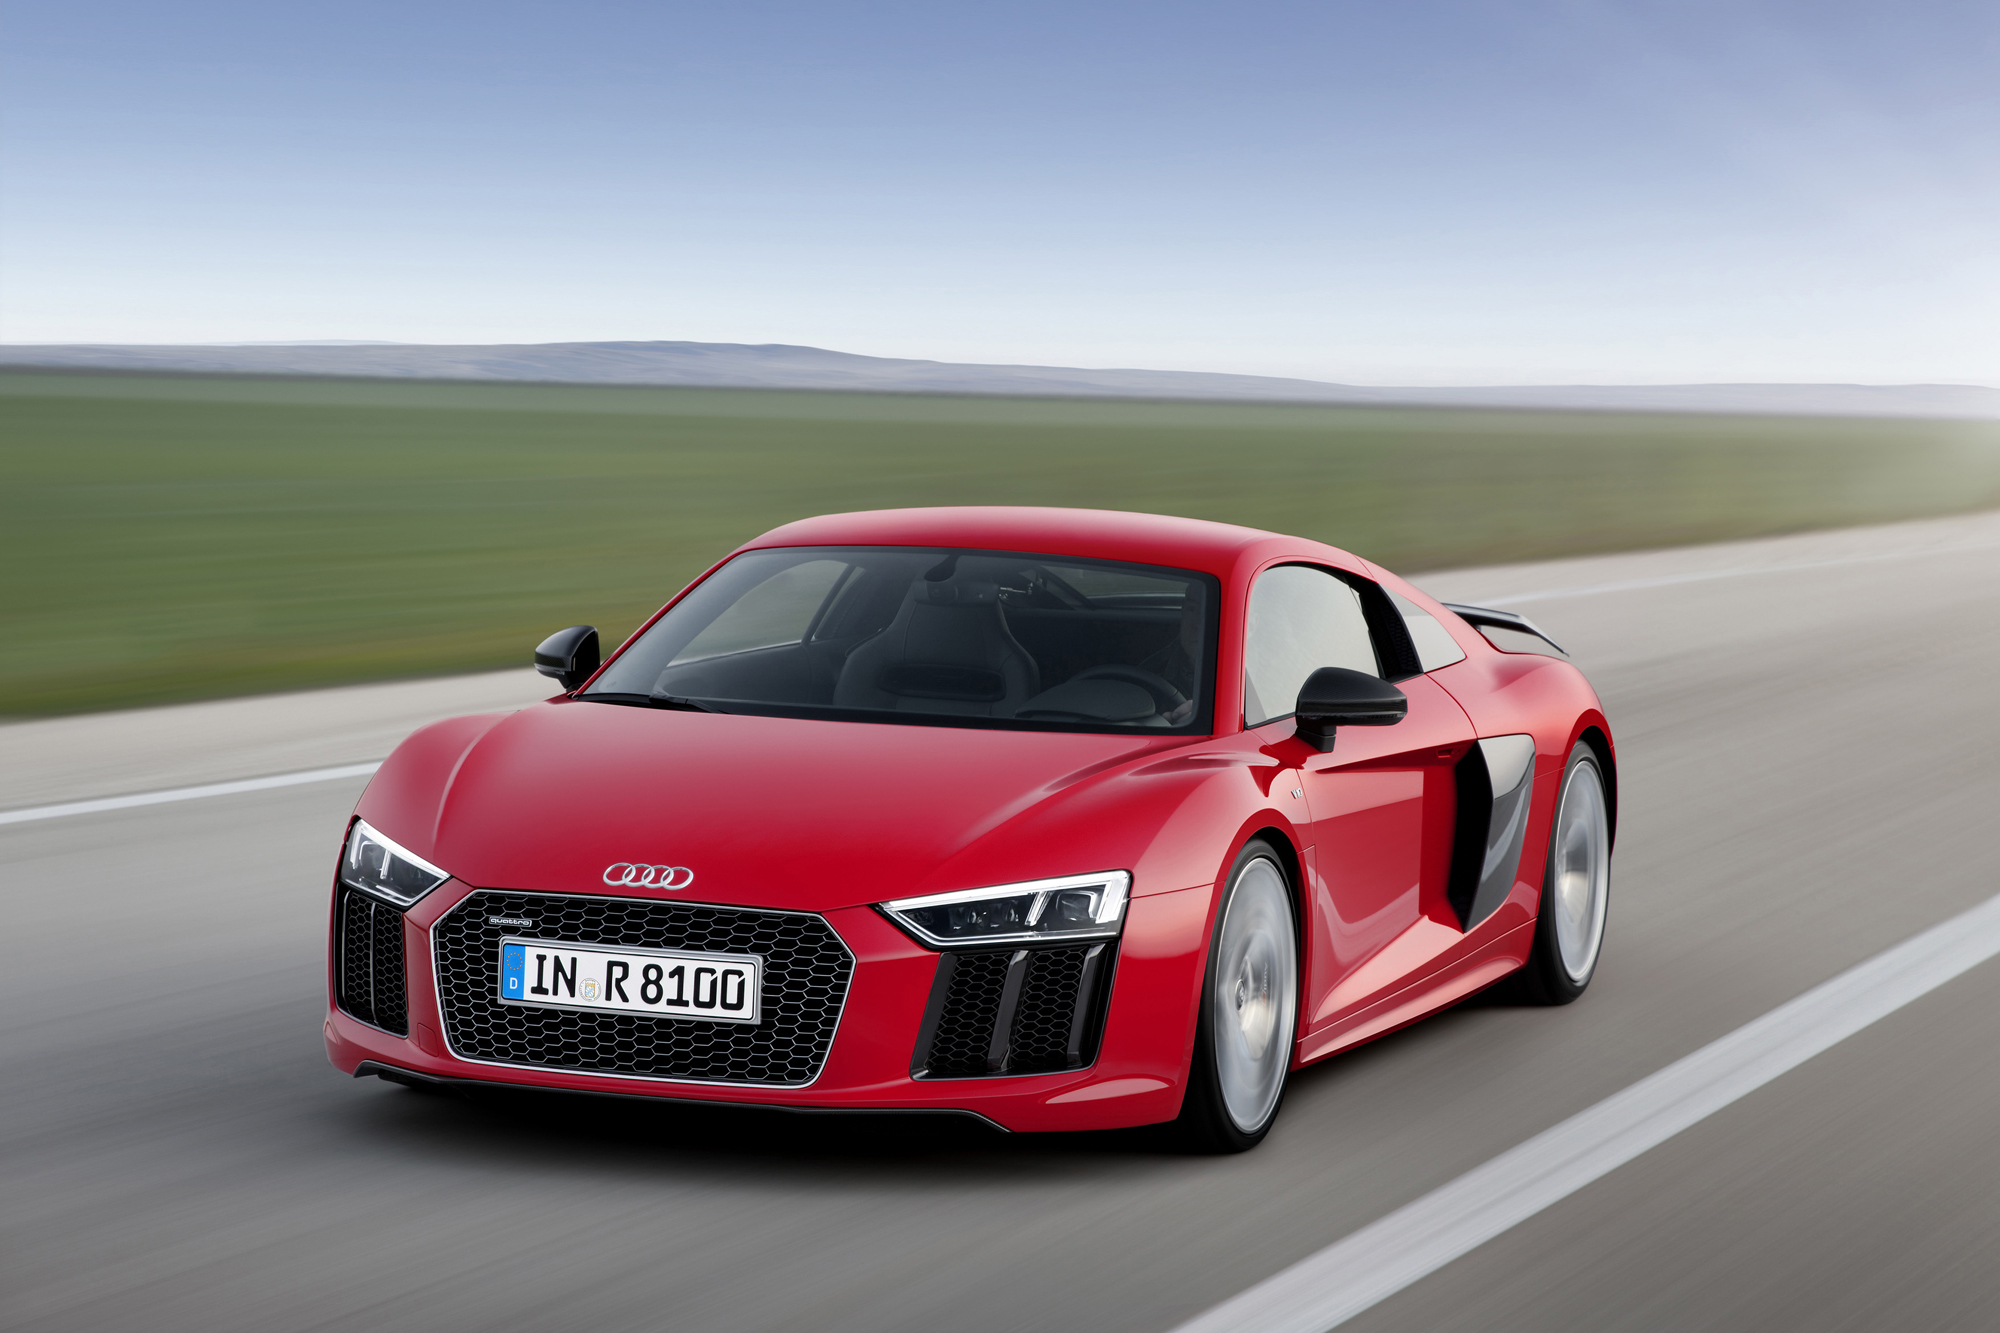 2016 audi r8 revealed with 610-hp » autoguide news